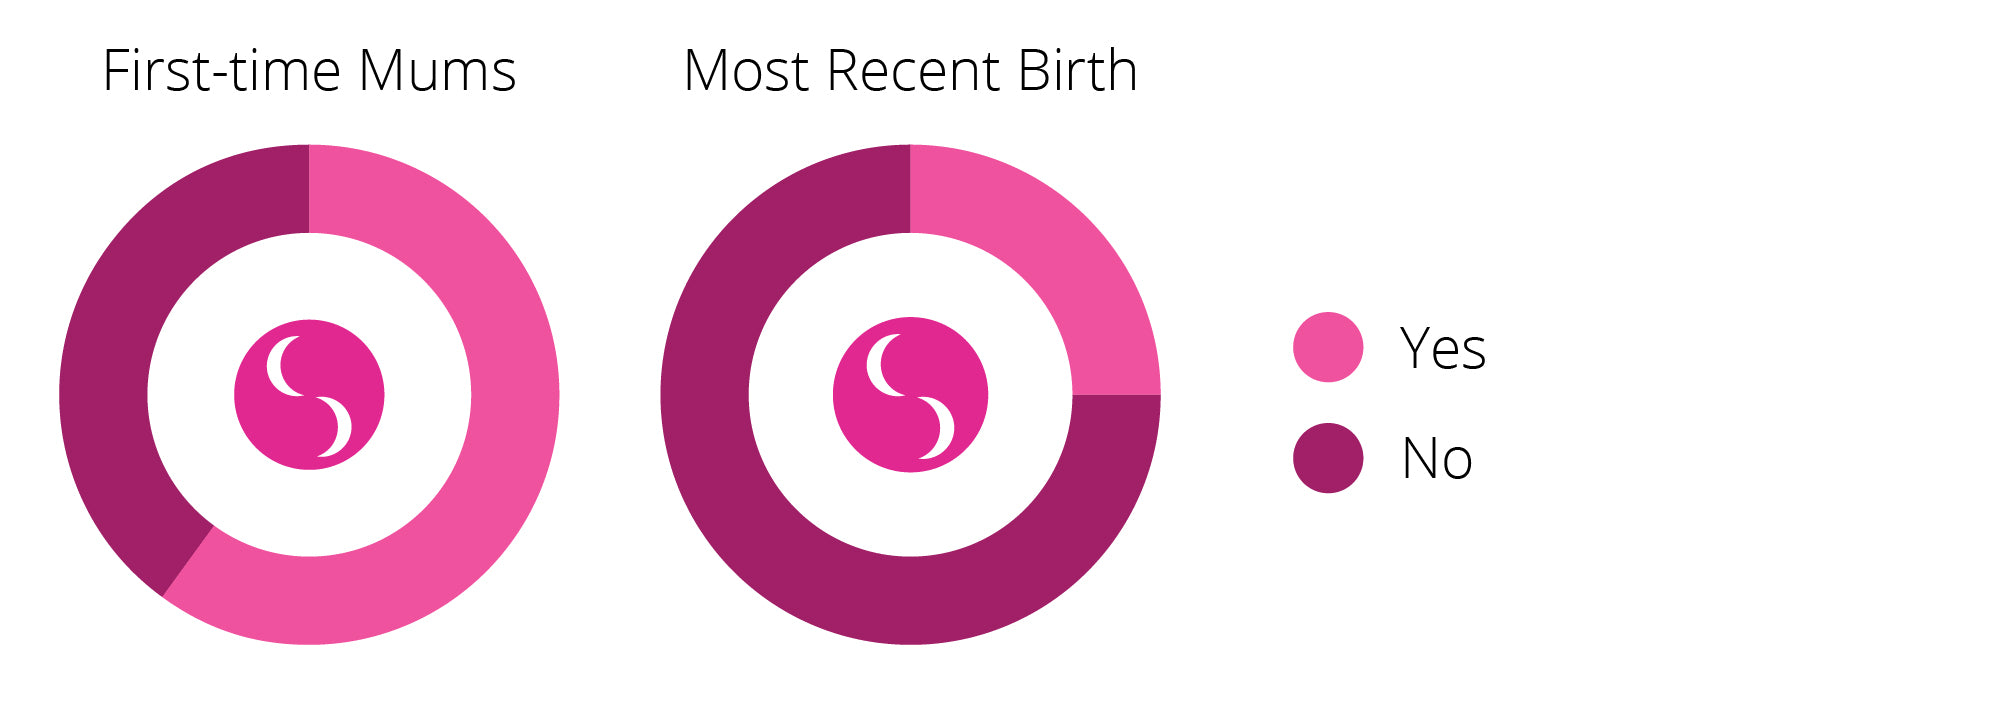 Birth Stories - What 583 Mums Had to Say About Childbirth